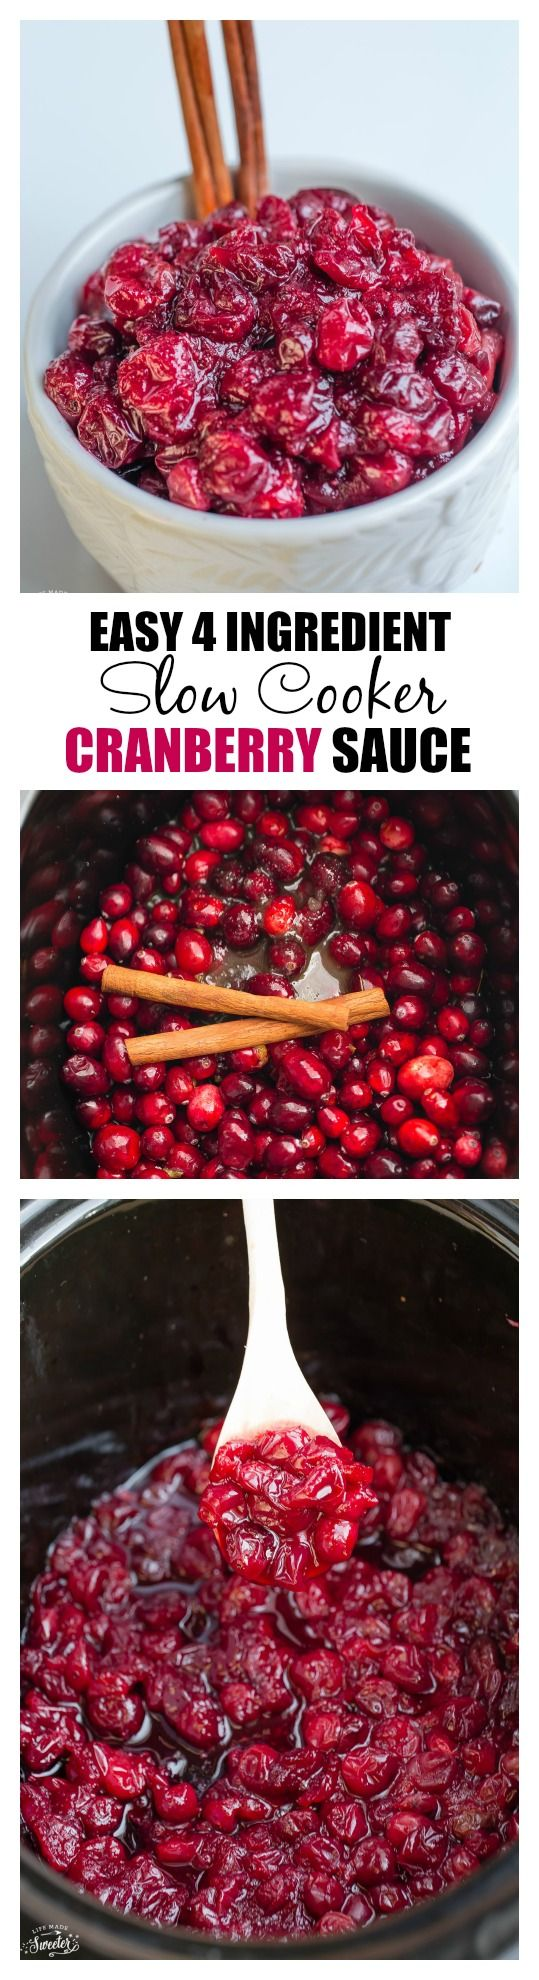 Slow Cooker Cranberry Sauce is so easy to make with only 4 ingredients